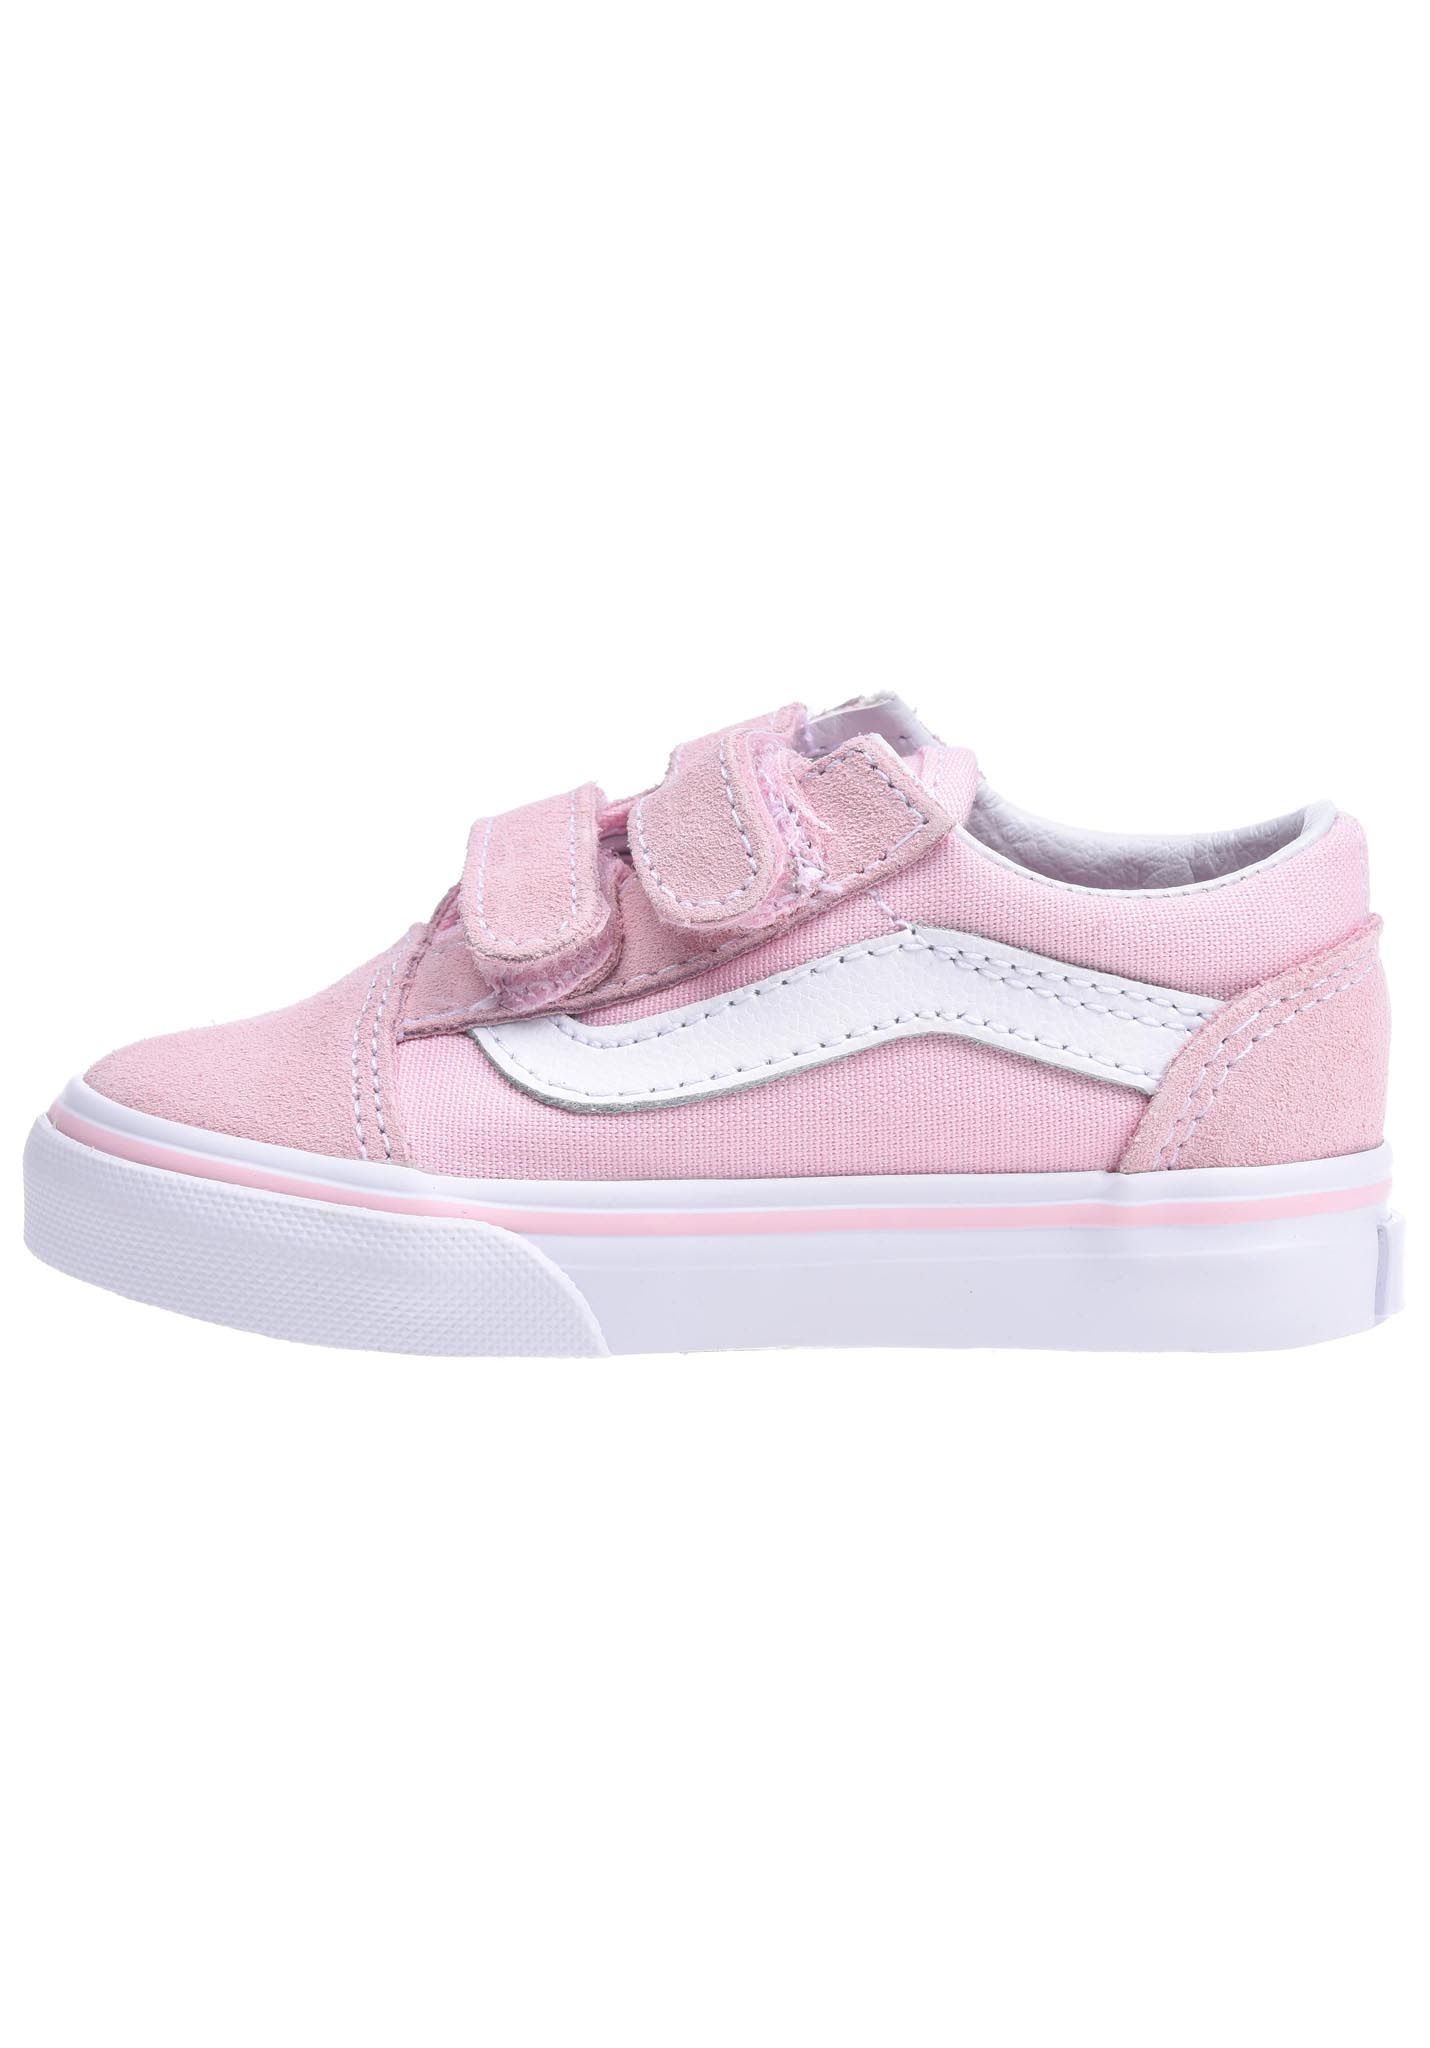 489e2070c35a24 Vans Old Skool V - Sneakers - Pink - Planet Sports